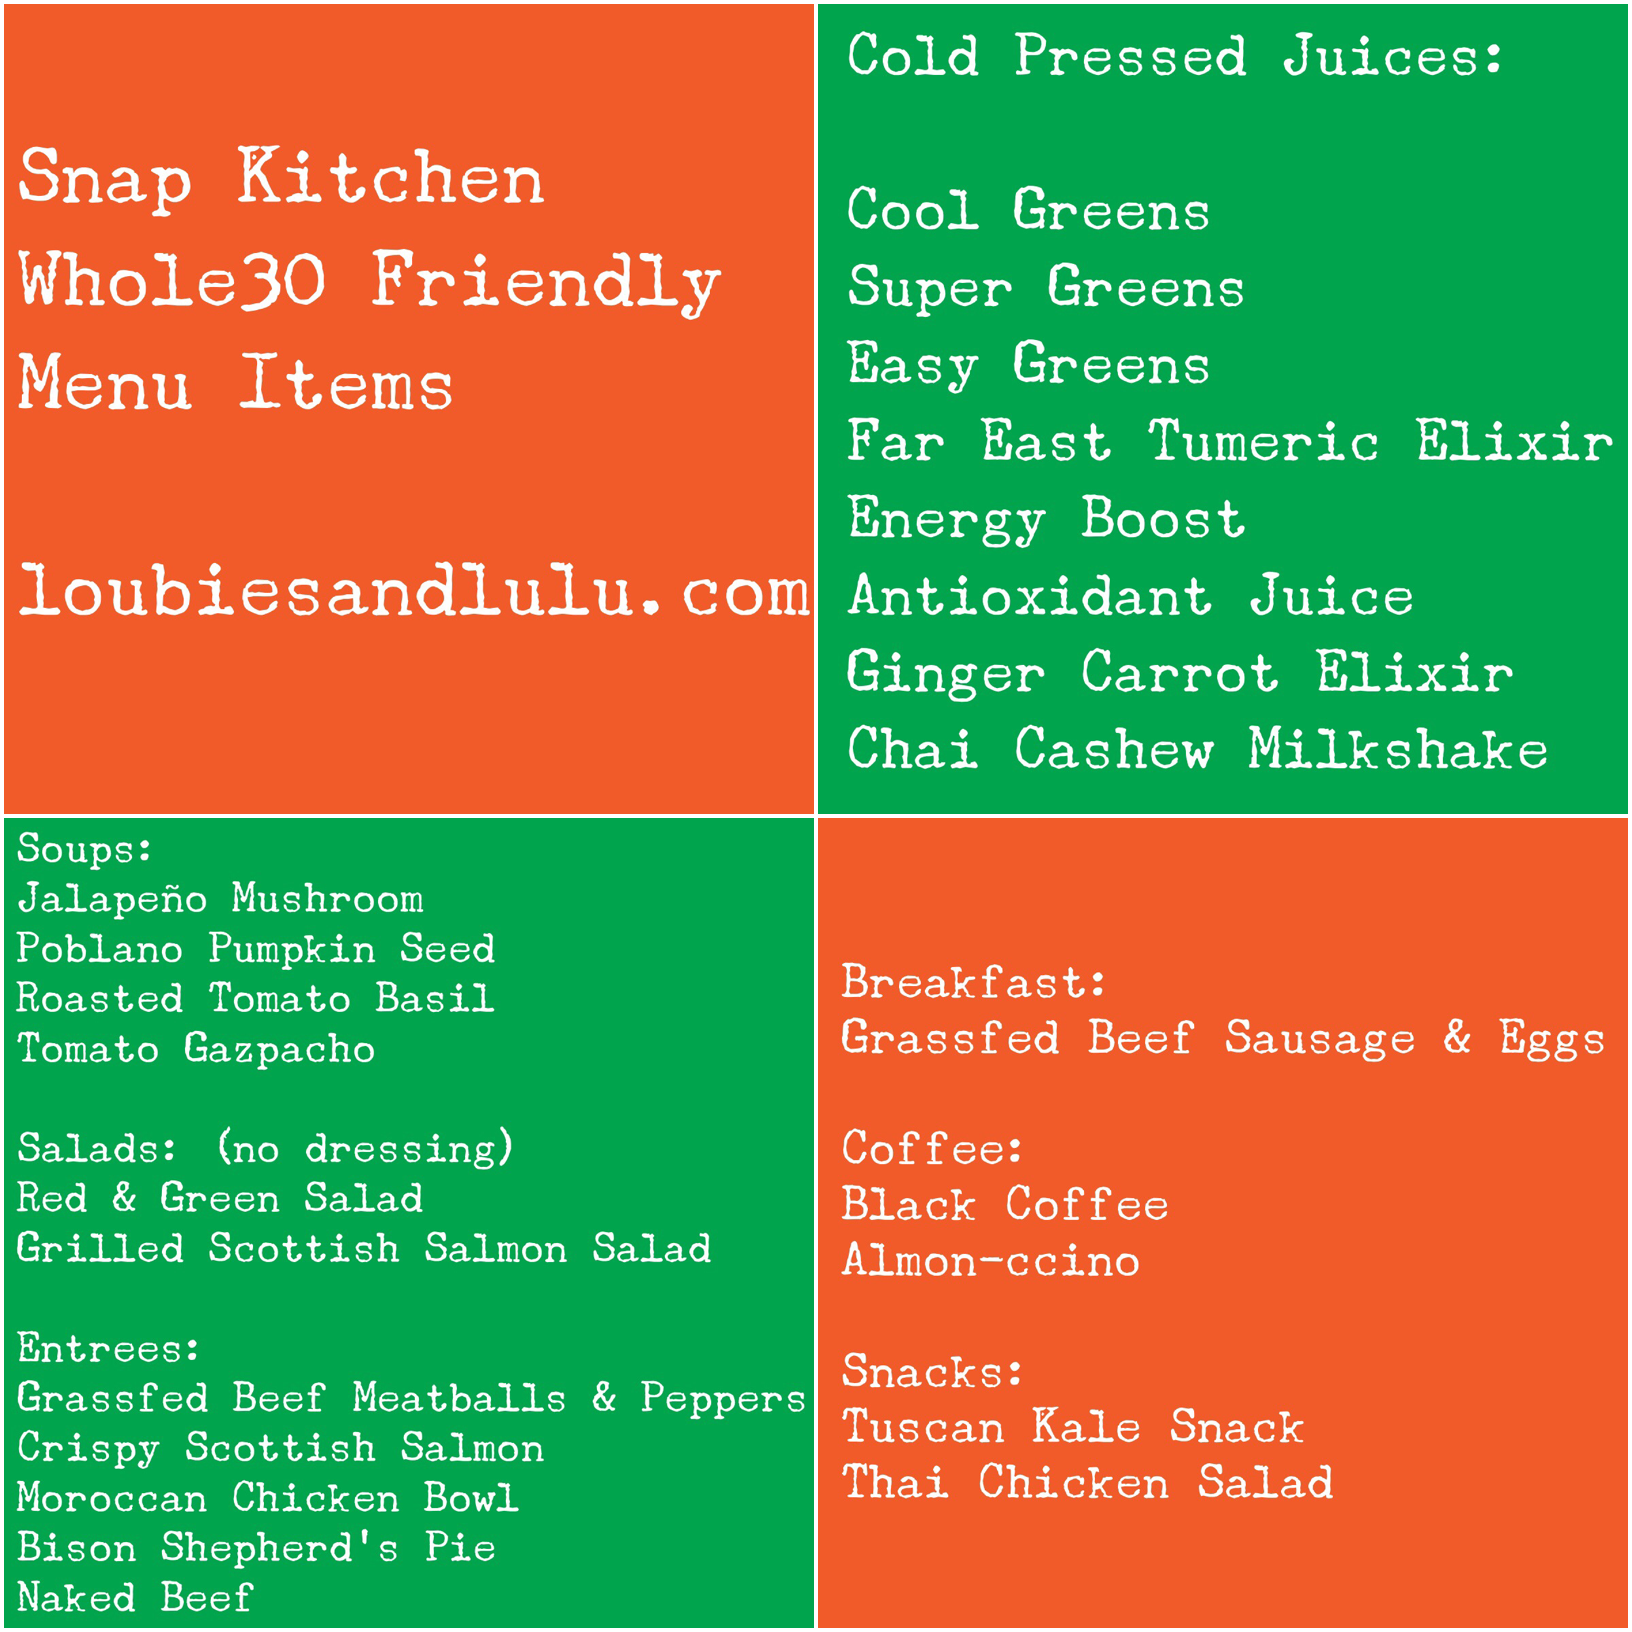 Awesome SNAP KITCHEN + WHOLE30 Great Pictures